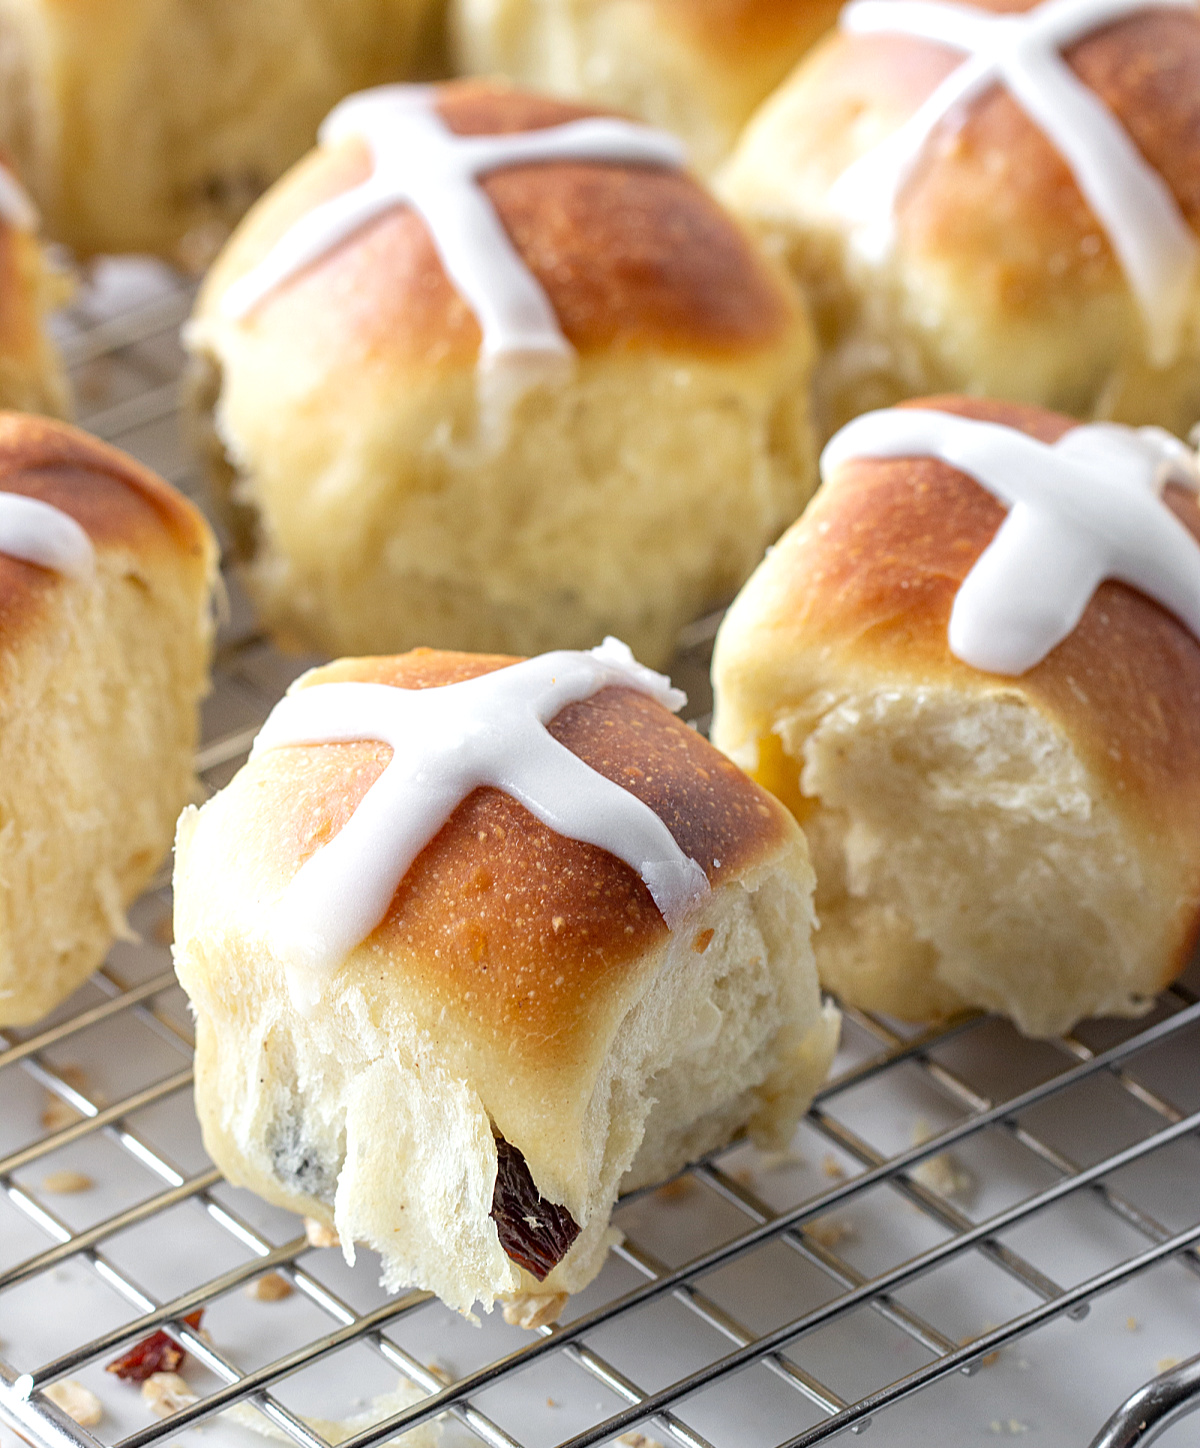 Small buns with white cross on top on wire rack